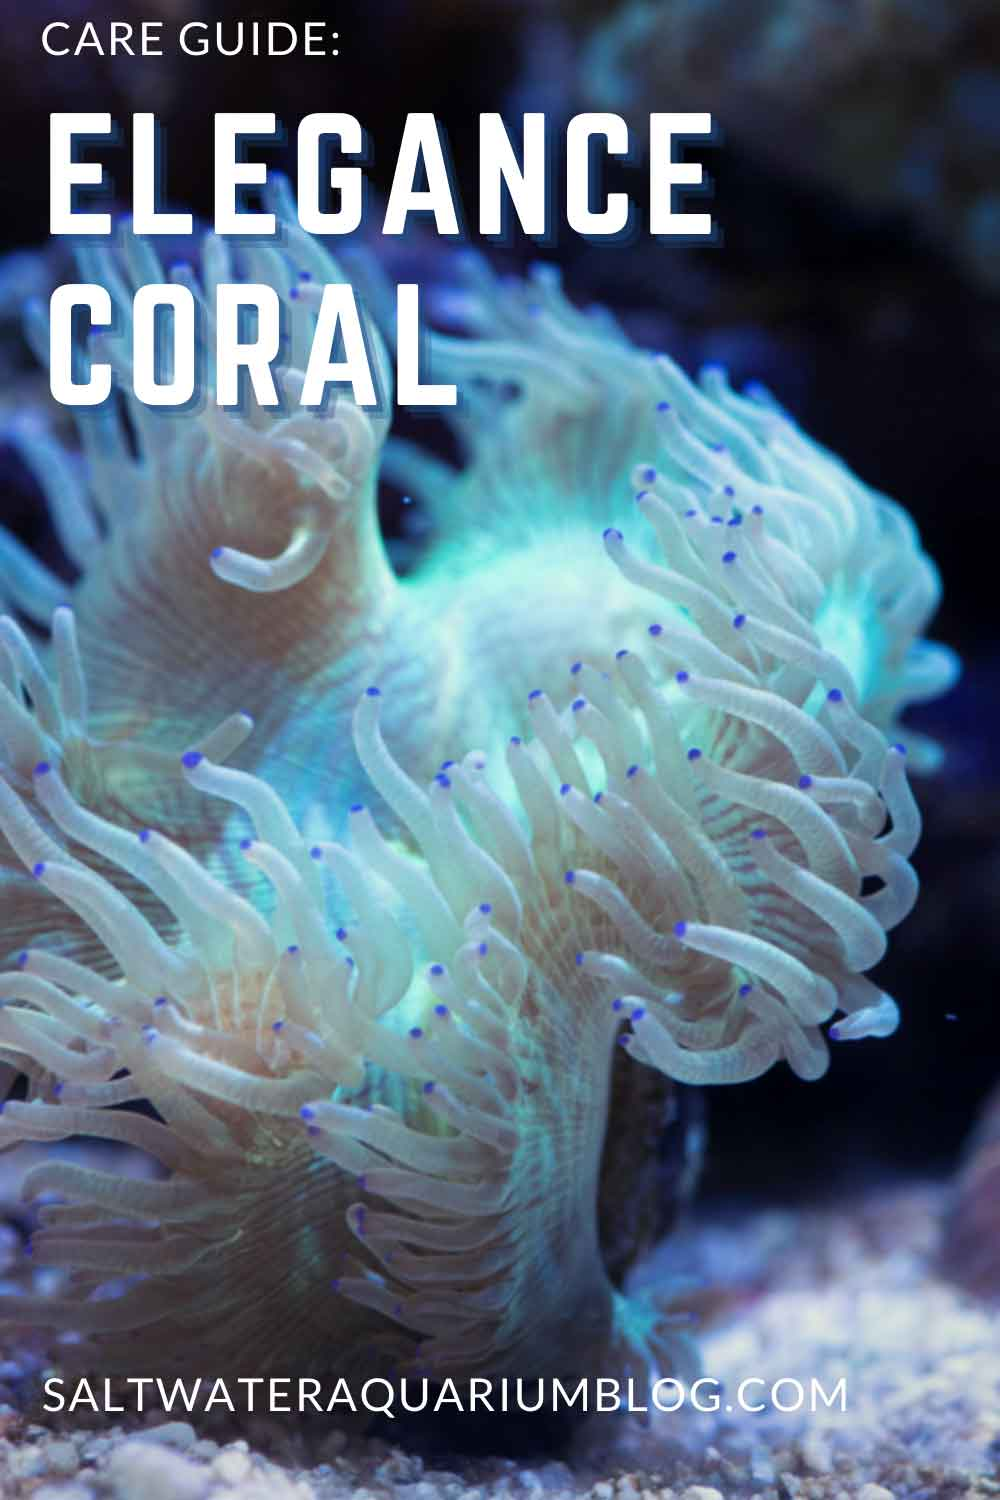 Elegance coral care guide